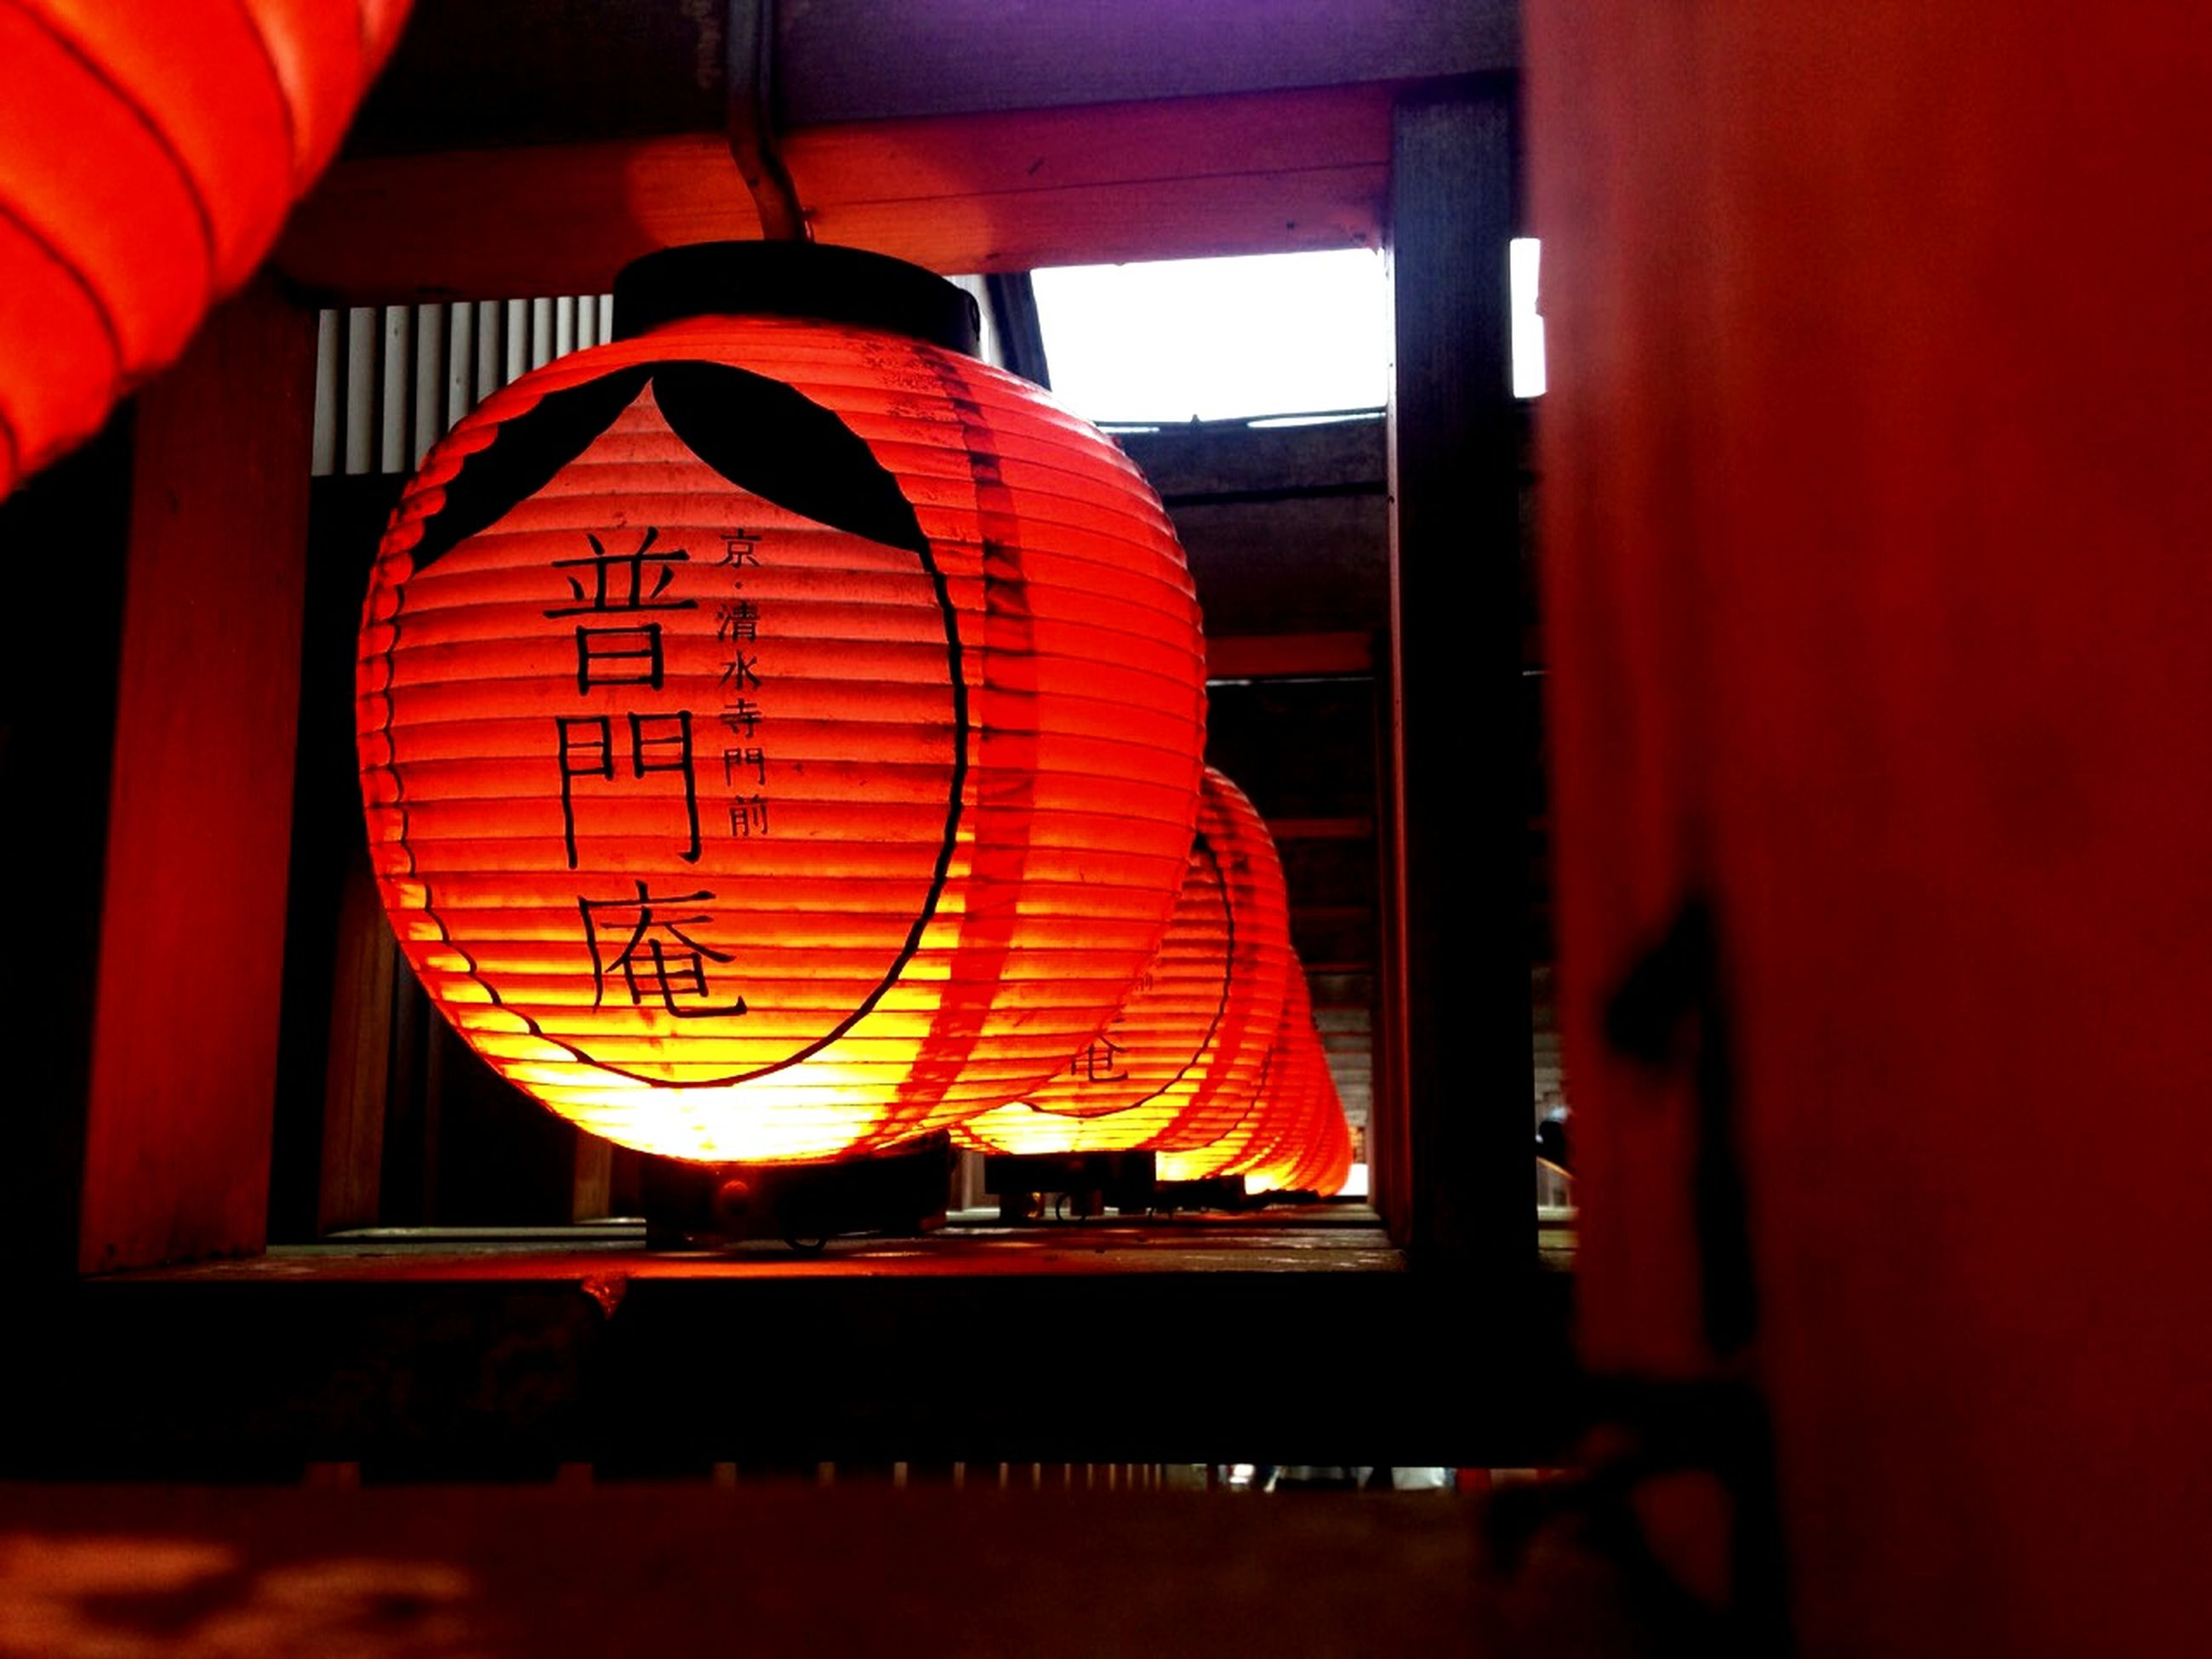 indoors, red, illuminated, orange color, built structure, hanging, architecture, window, lighting equipment, no people, low angle view, circle, lantern, arts culture and entertainment, home interior, close-up, geometric shape, pattern, glass - material, design